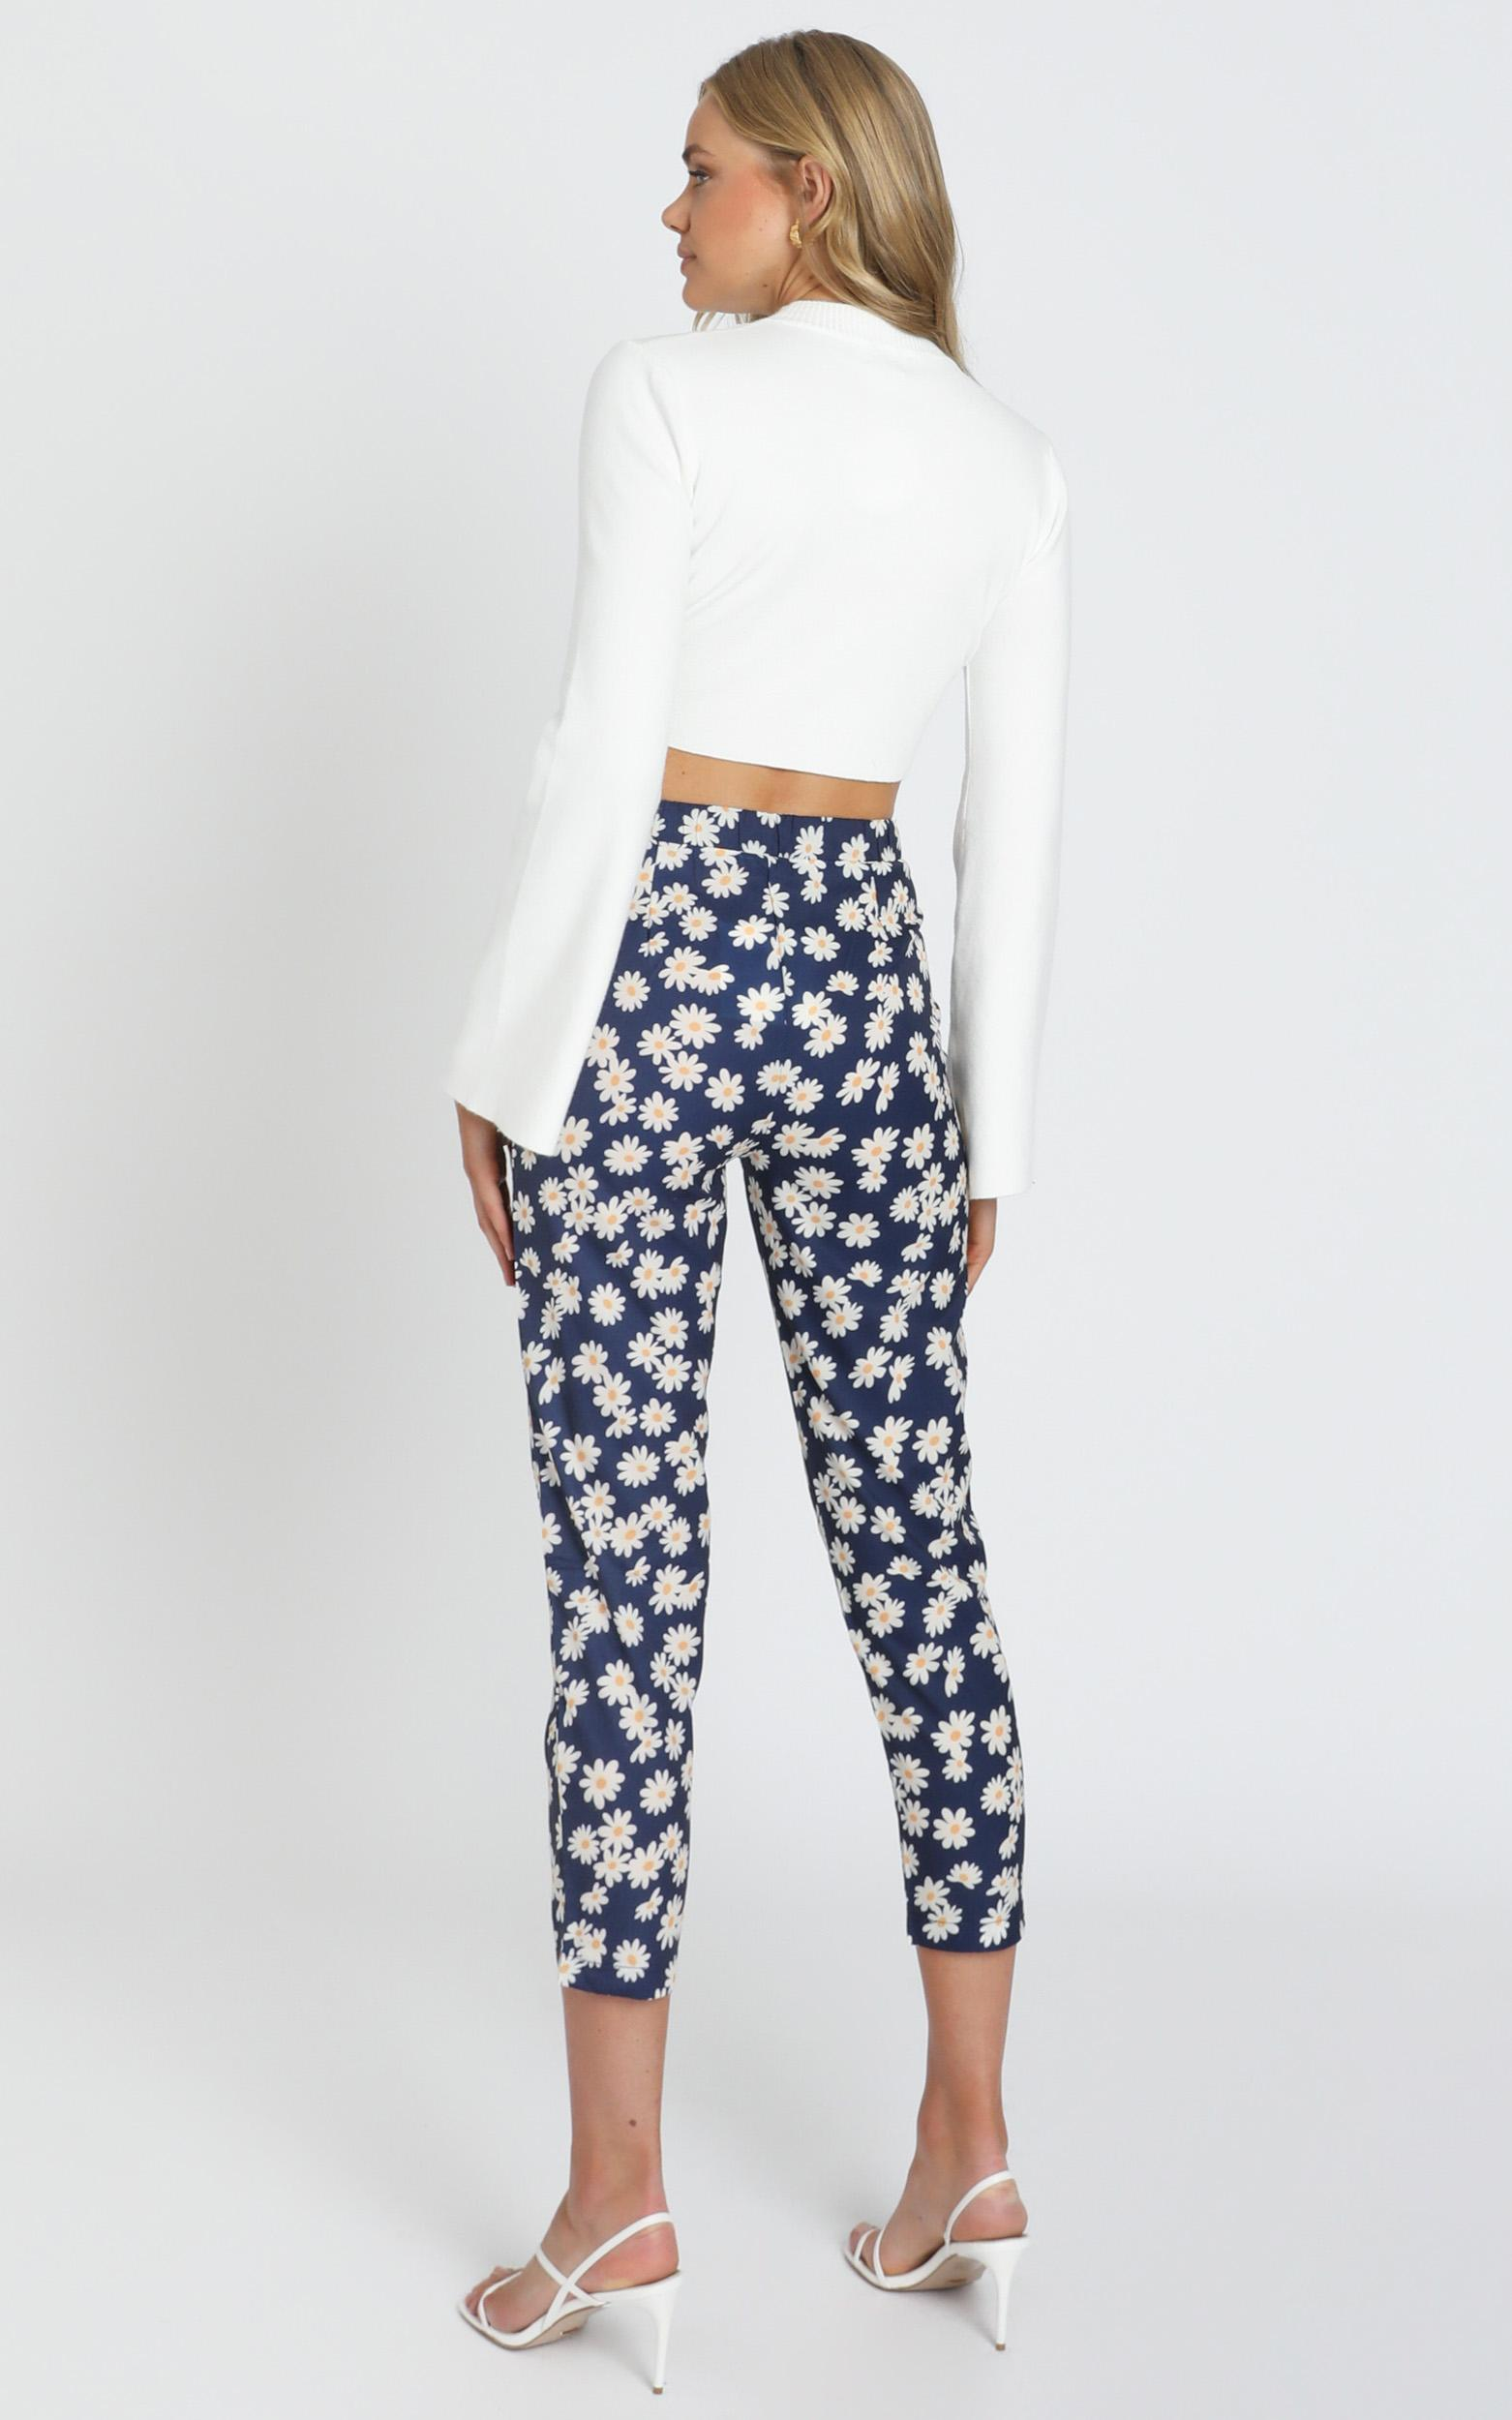 Shallon Pants in Navy Floral - 6 (XS), Navy, hi-res image number null